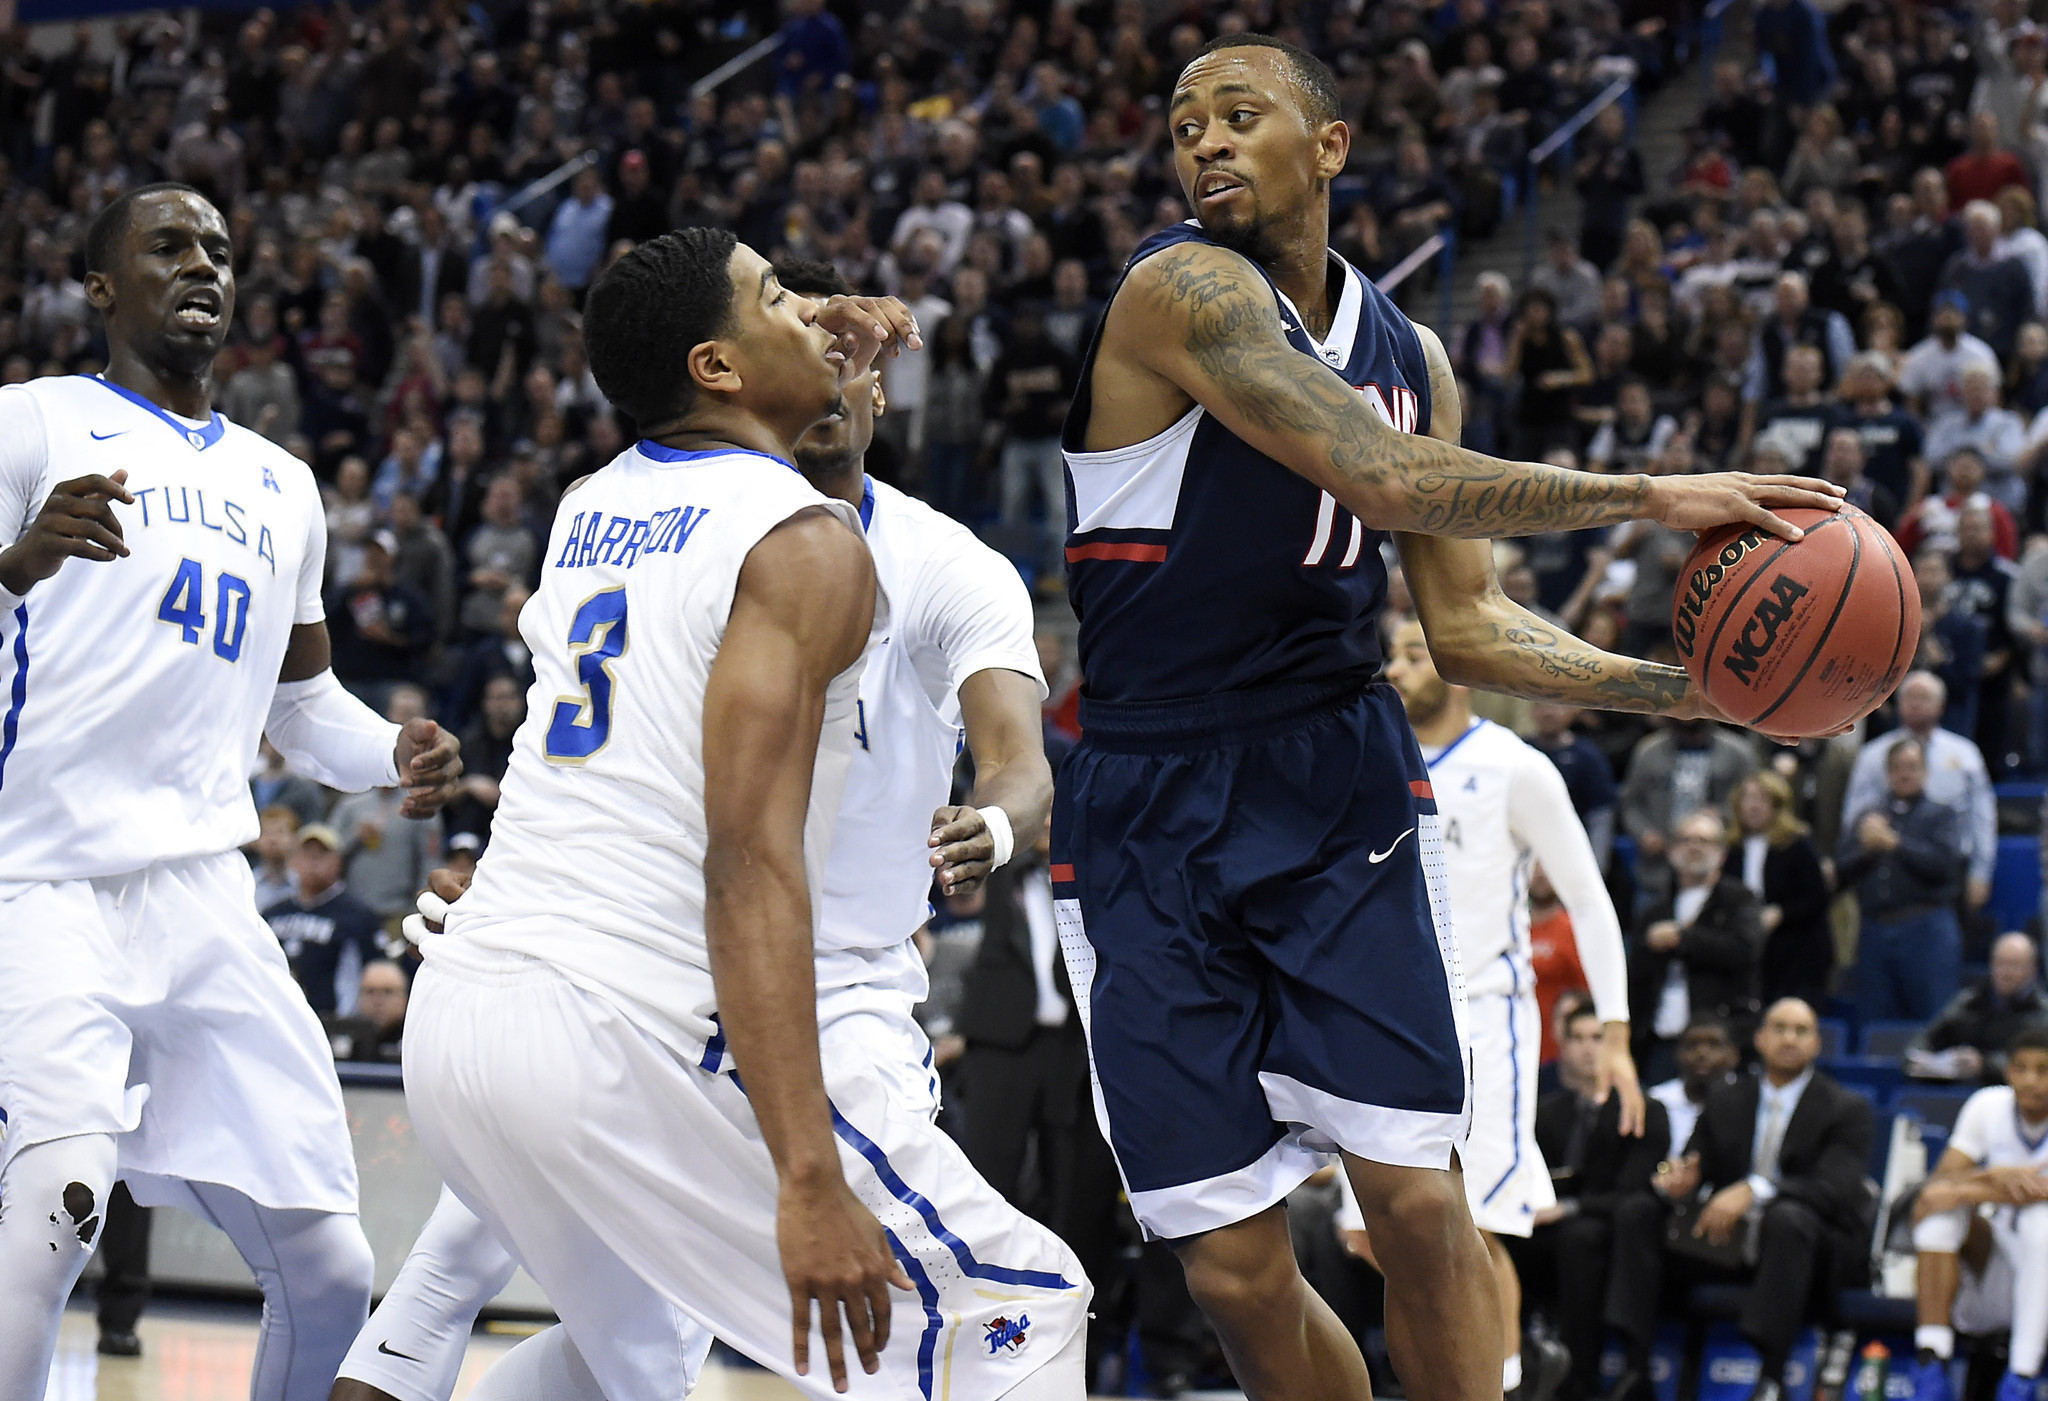 UConn Men Come Back And Beat Tulsa 47-42; Team To Face SMU ...